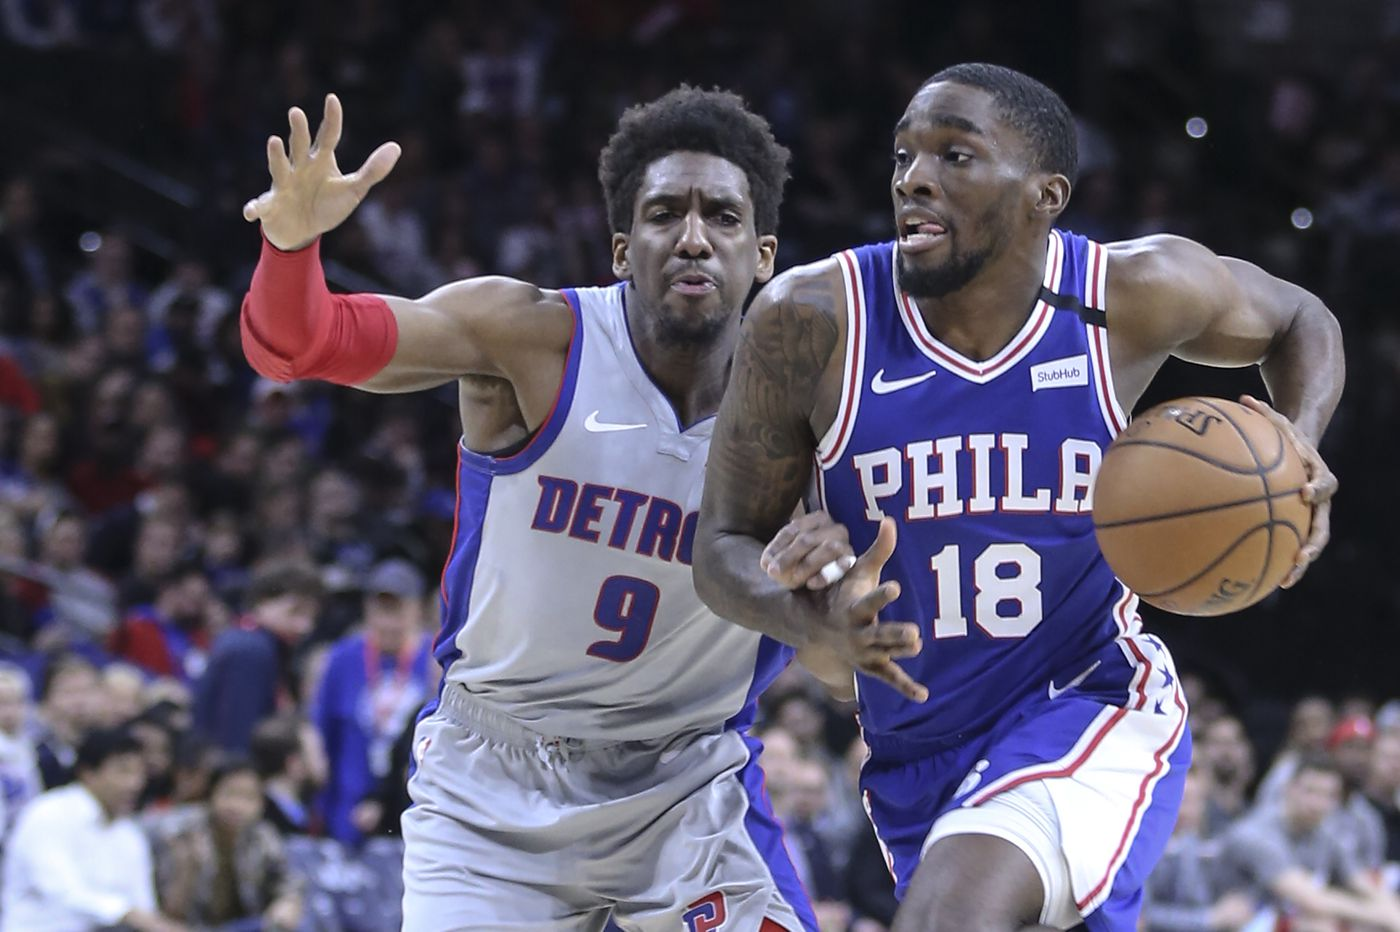 Sixers mailbag: Evaluating Shake Milton, finalizing the rotation, and predicting how the team will do in the postseason